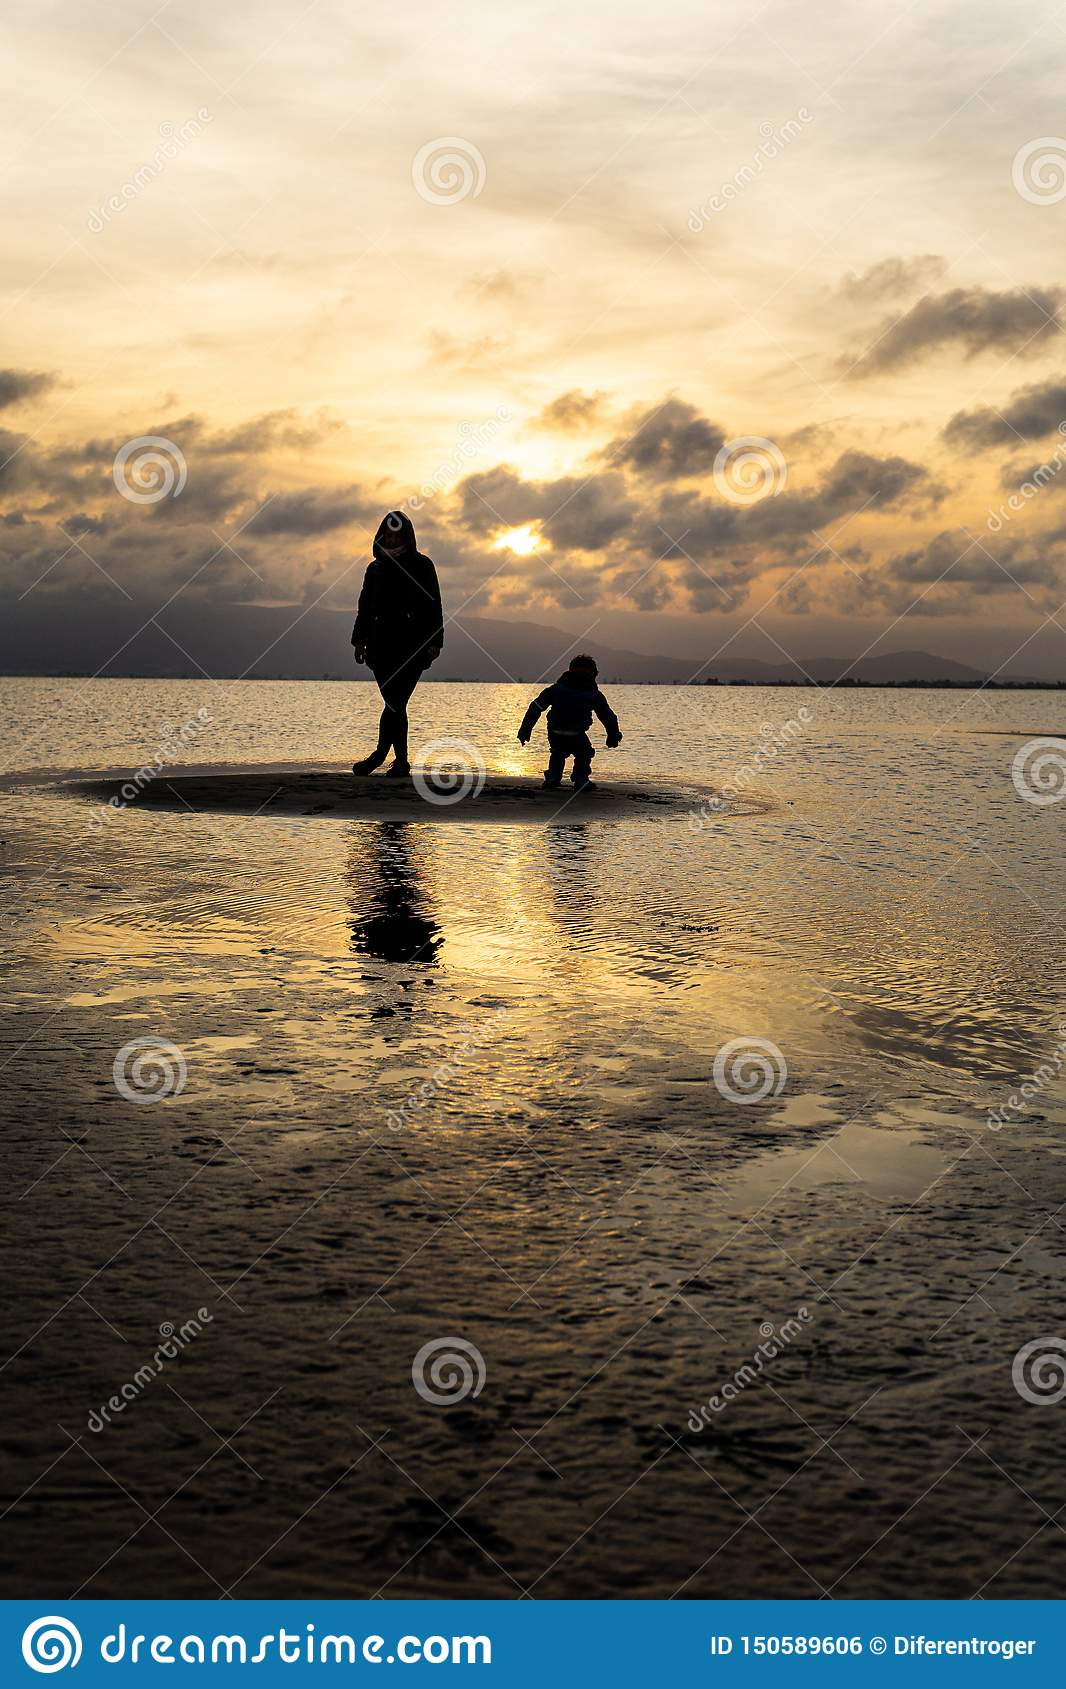 Silhouettes of unrecognizable people on the beach at sunset